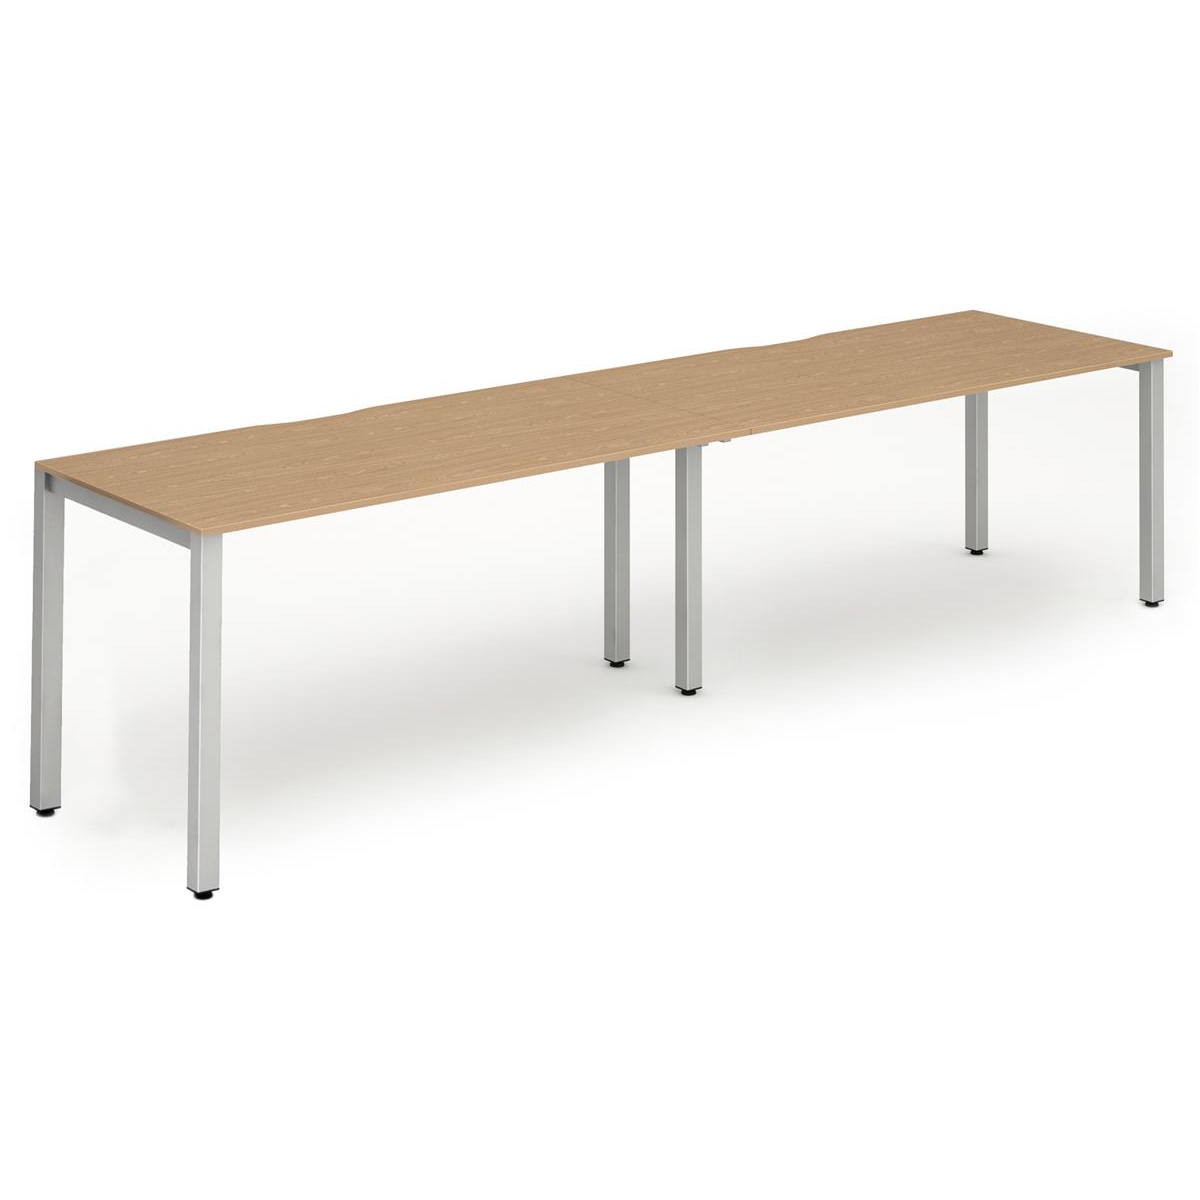 Trexus Bench Desk 2 Person Side to Side Configuration Silver Leg 2400x800mm Oak Ref BE378